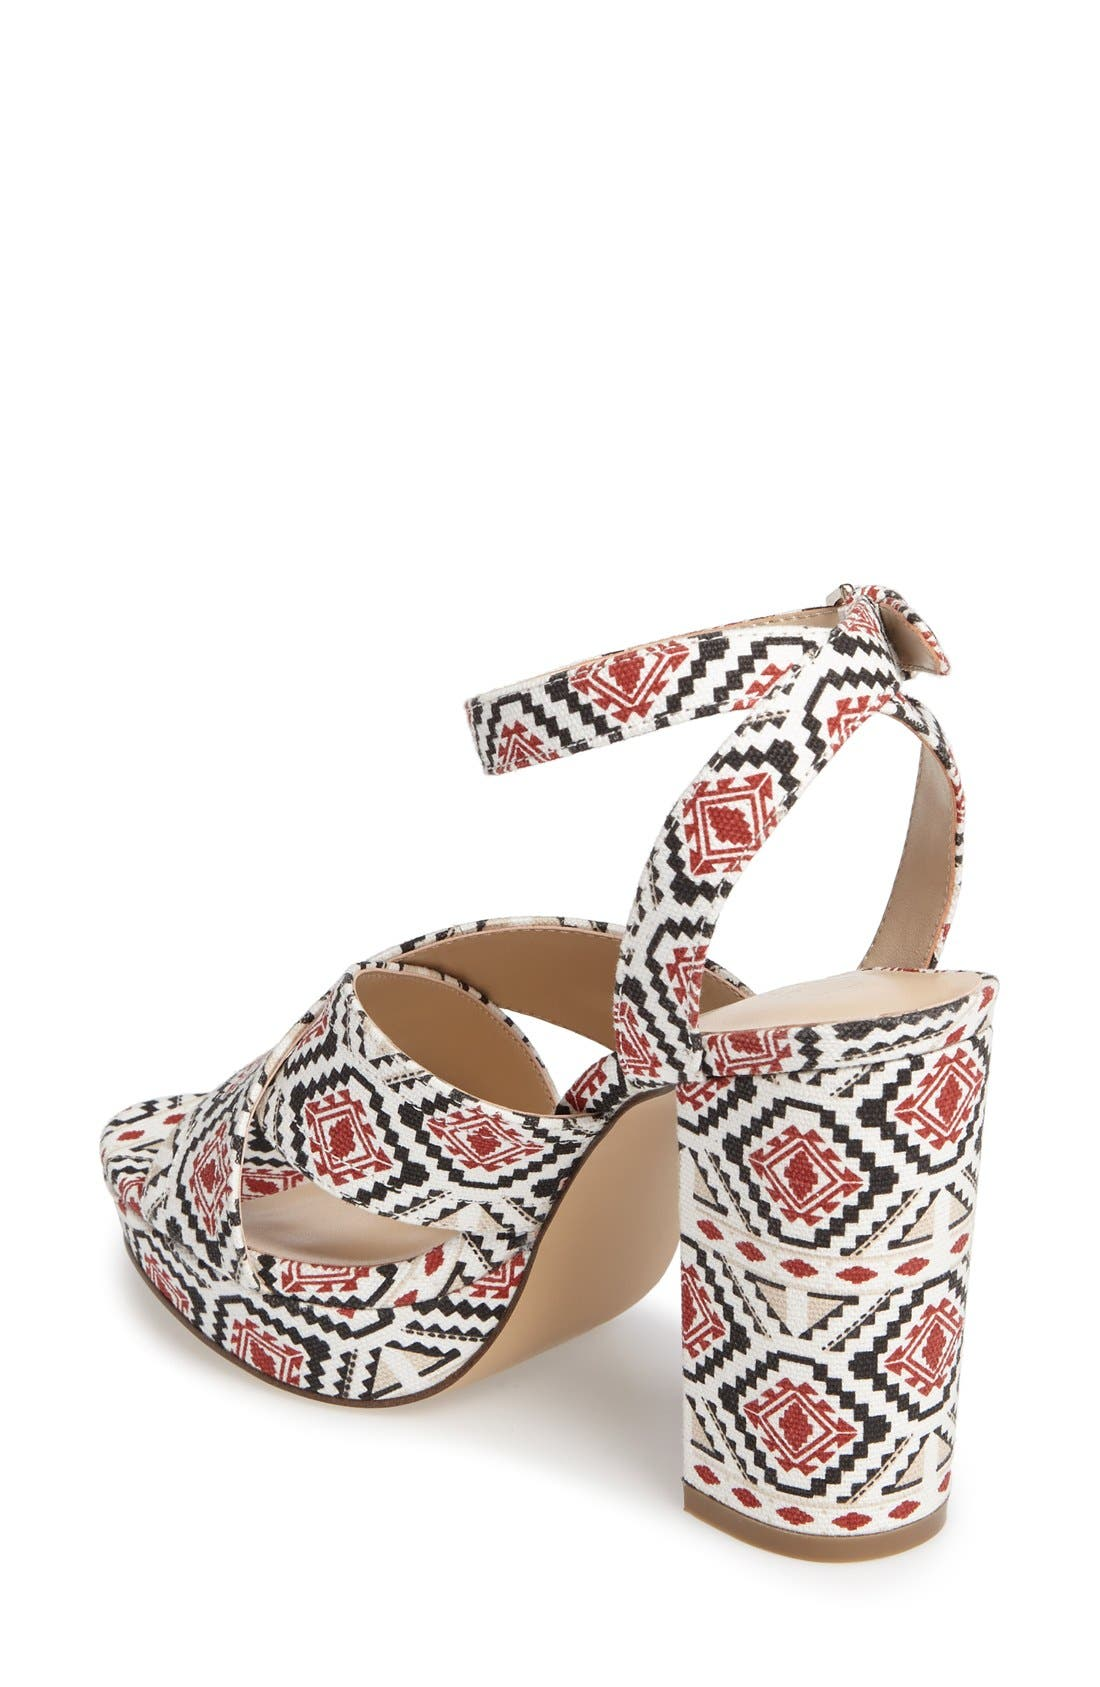 Windye Platform Ankle Strap Sandal,                             Alternate thumbnail 2, color,                             Tribal Fabric